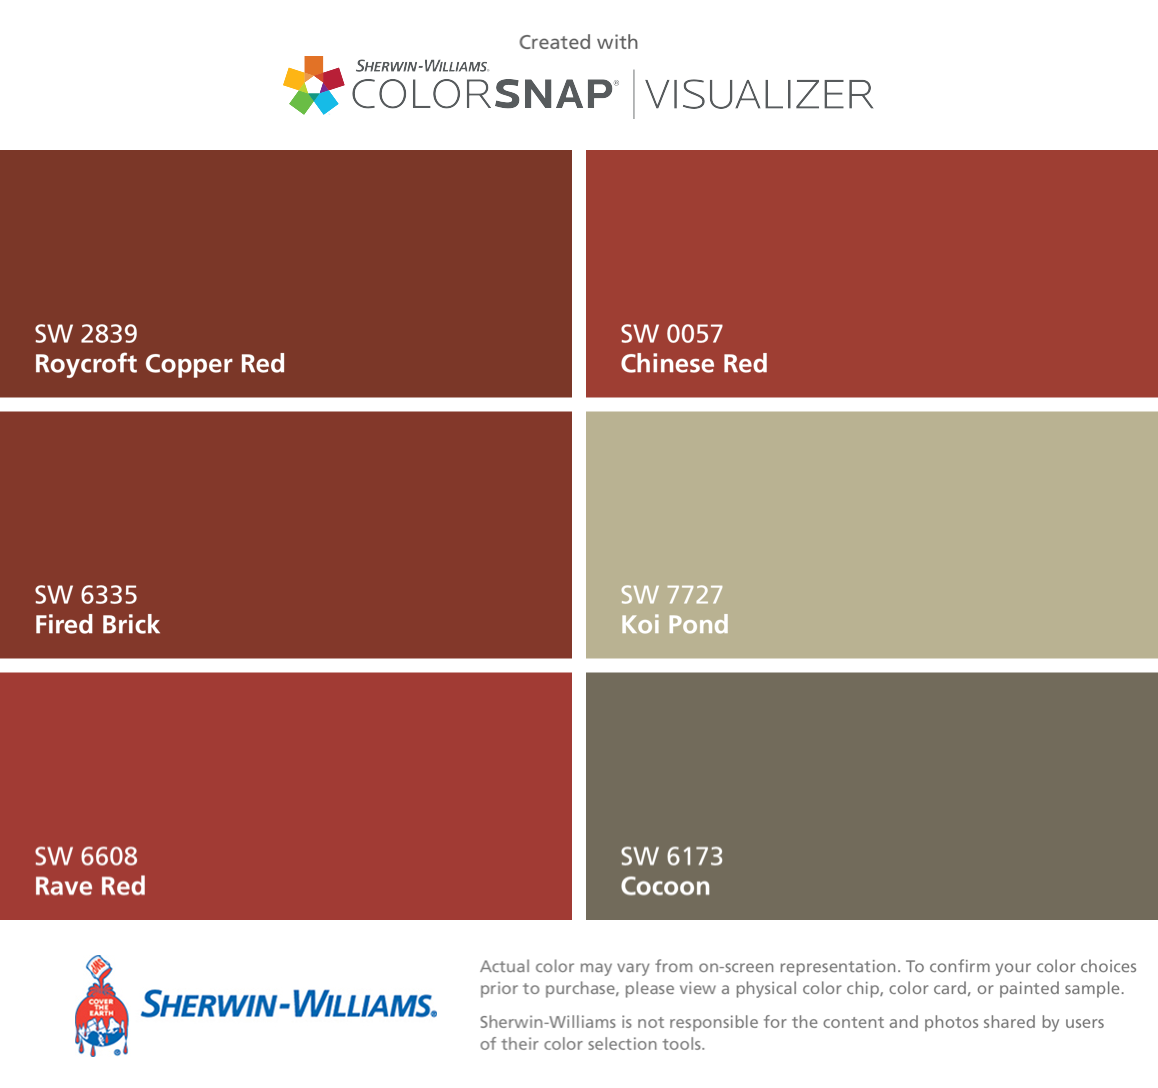 I Found These Colors With ColorSnapR Visualizer For IPhone By Sherwin Williams Roycroft Copper Red SW 2839 Fired Brick 6335 Rave 6608